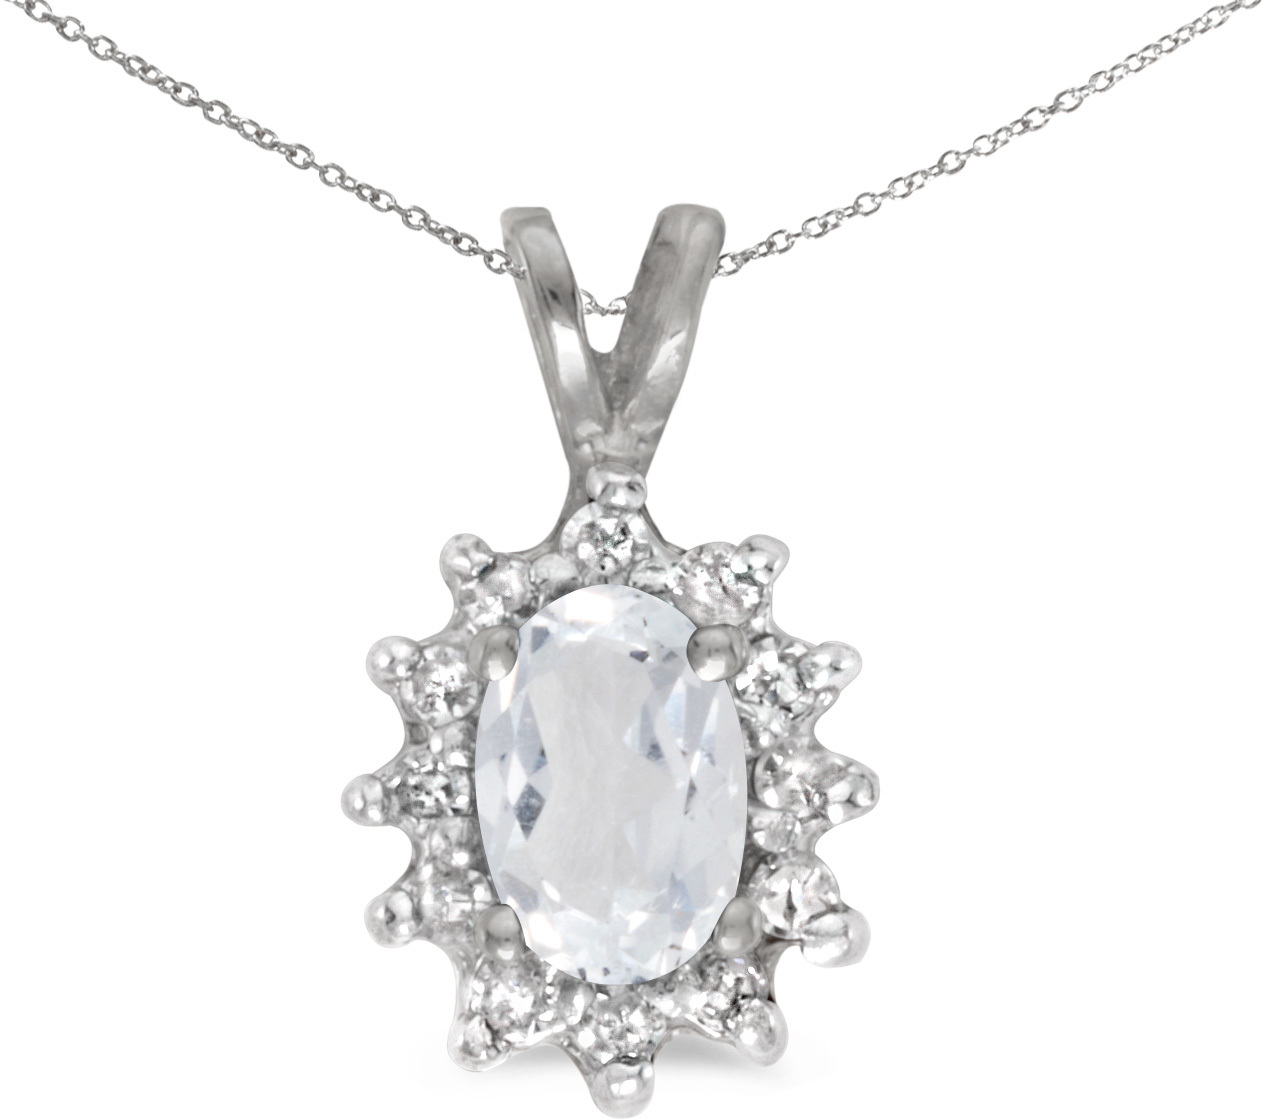 10k White Gold Oval White Topaz And Diamond Pendant (Chain NOT included)